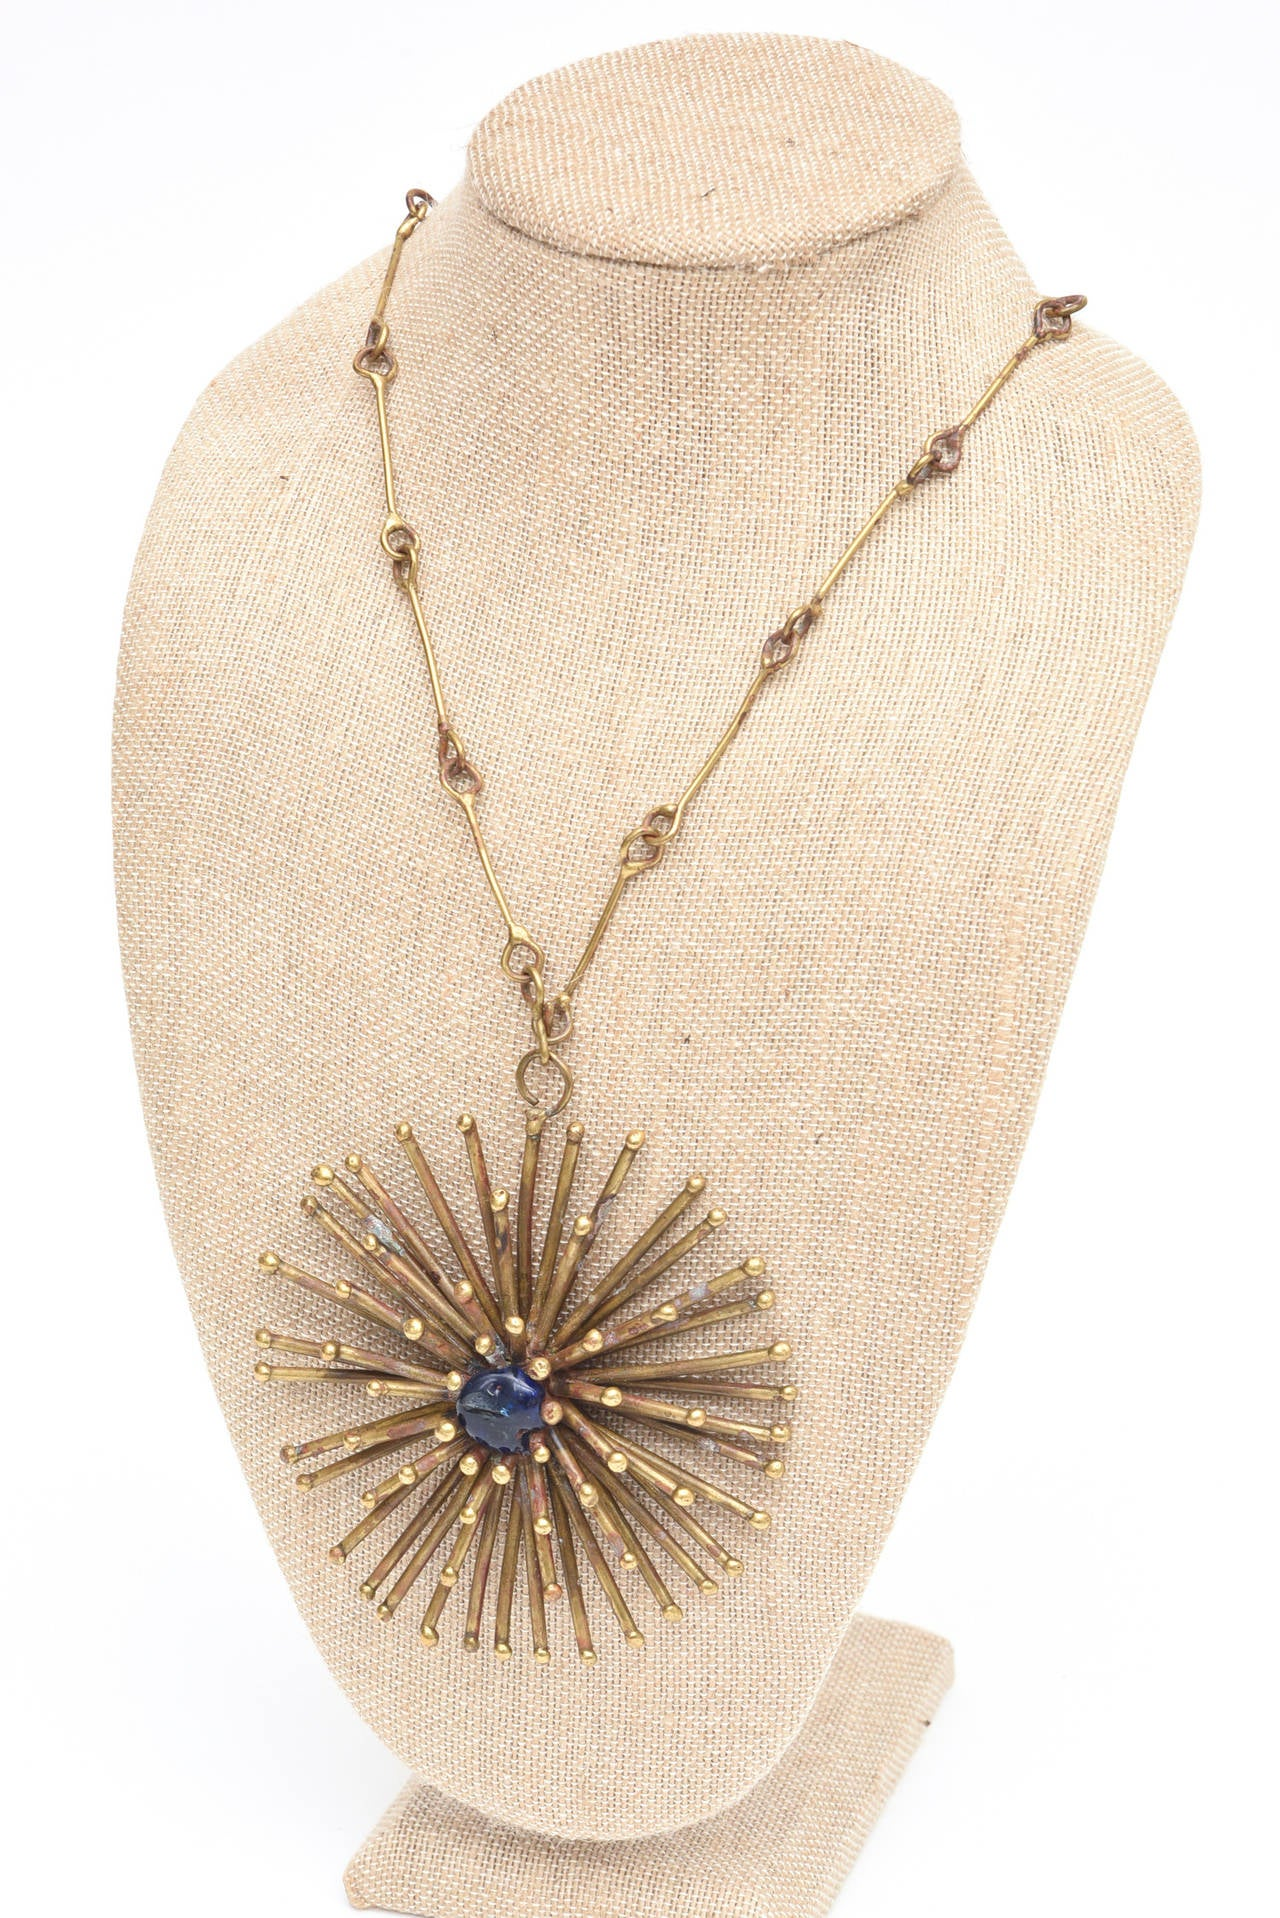 Bronze Hand Wrought Sculptural Starburst Medallion and Blue Stone Necklace /SALE 7